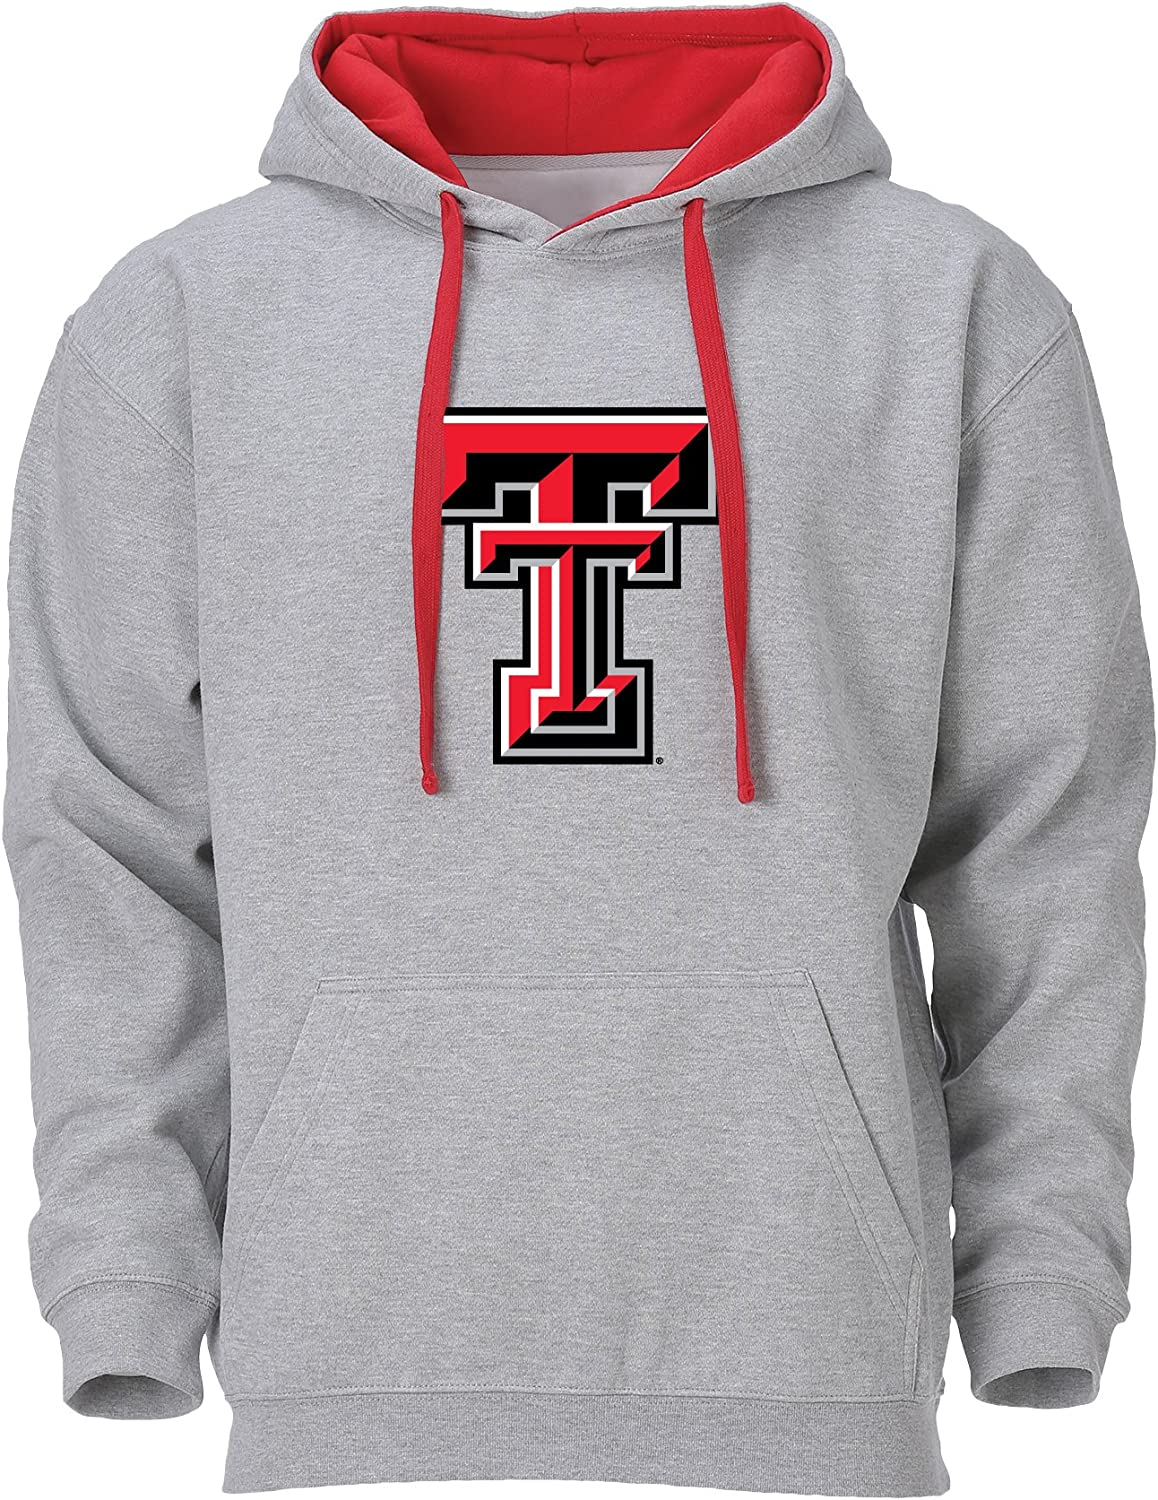 Ouray Sportswear NCAA Benchmark Colorblock Pullover Hood Texas Tech Red Raiders Small Oxford//Red Logo